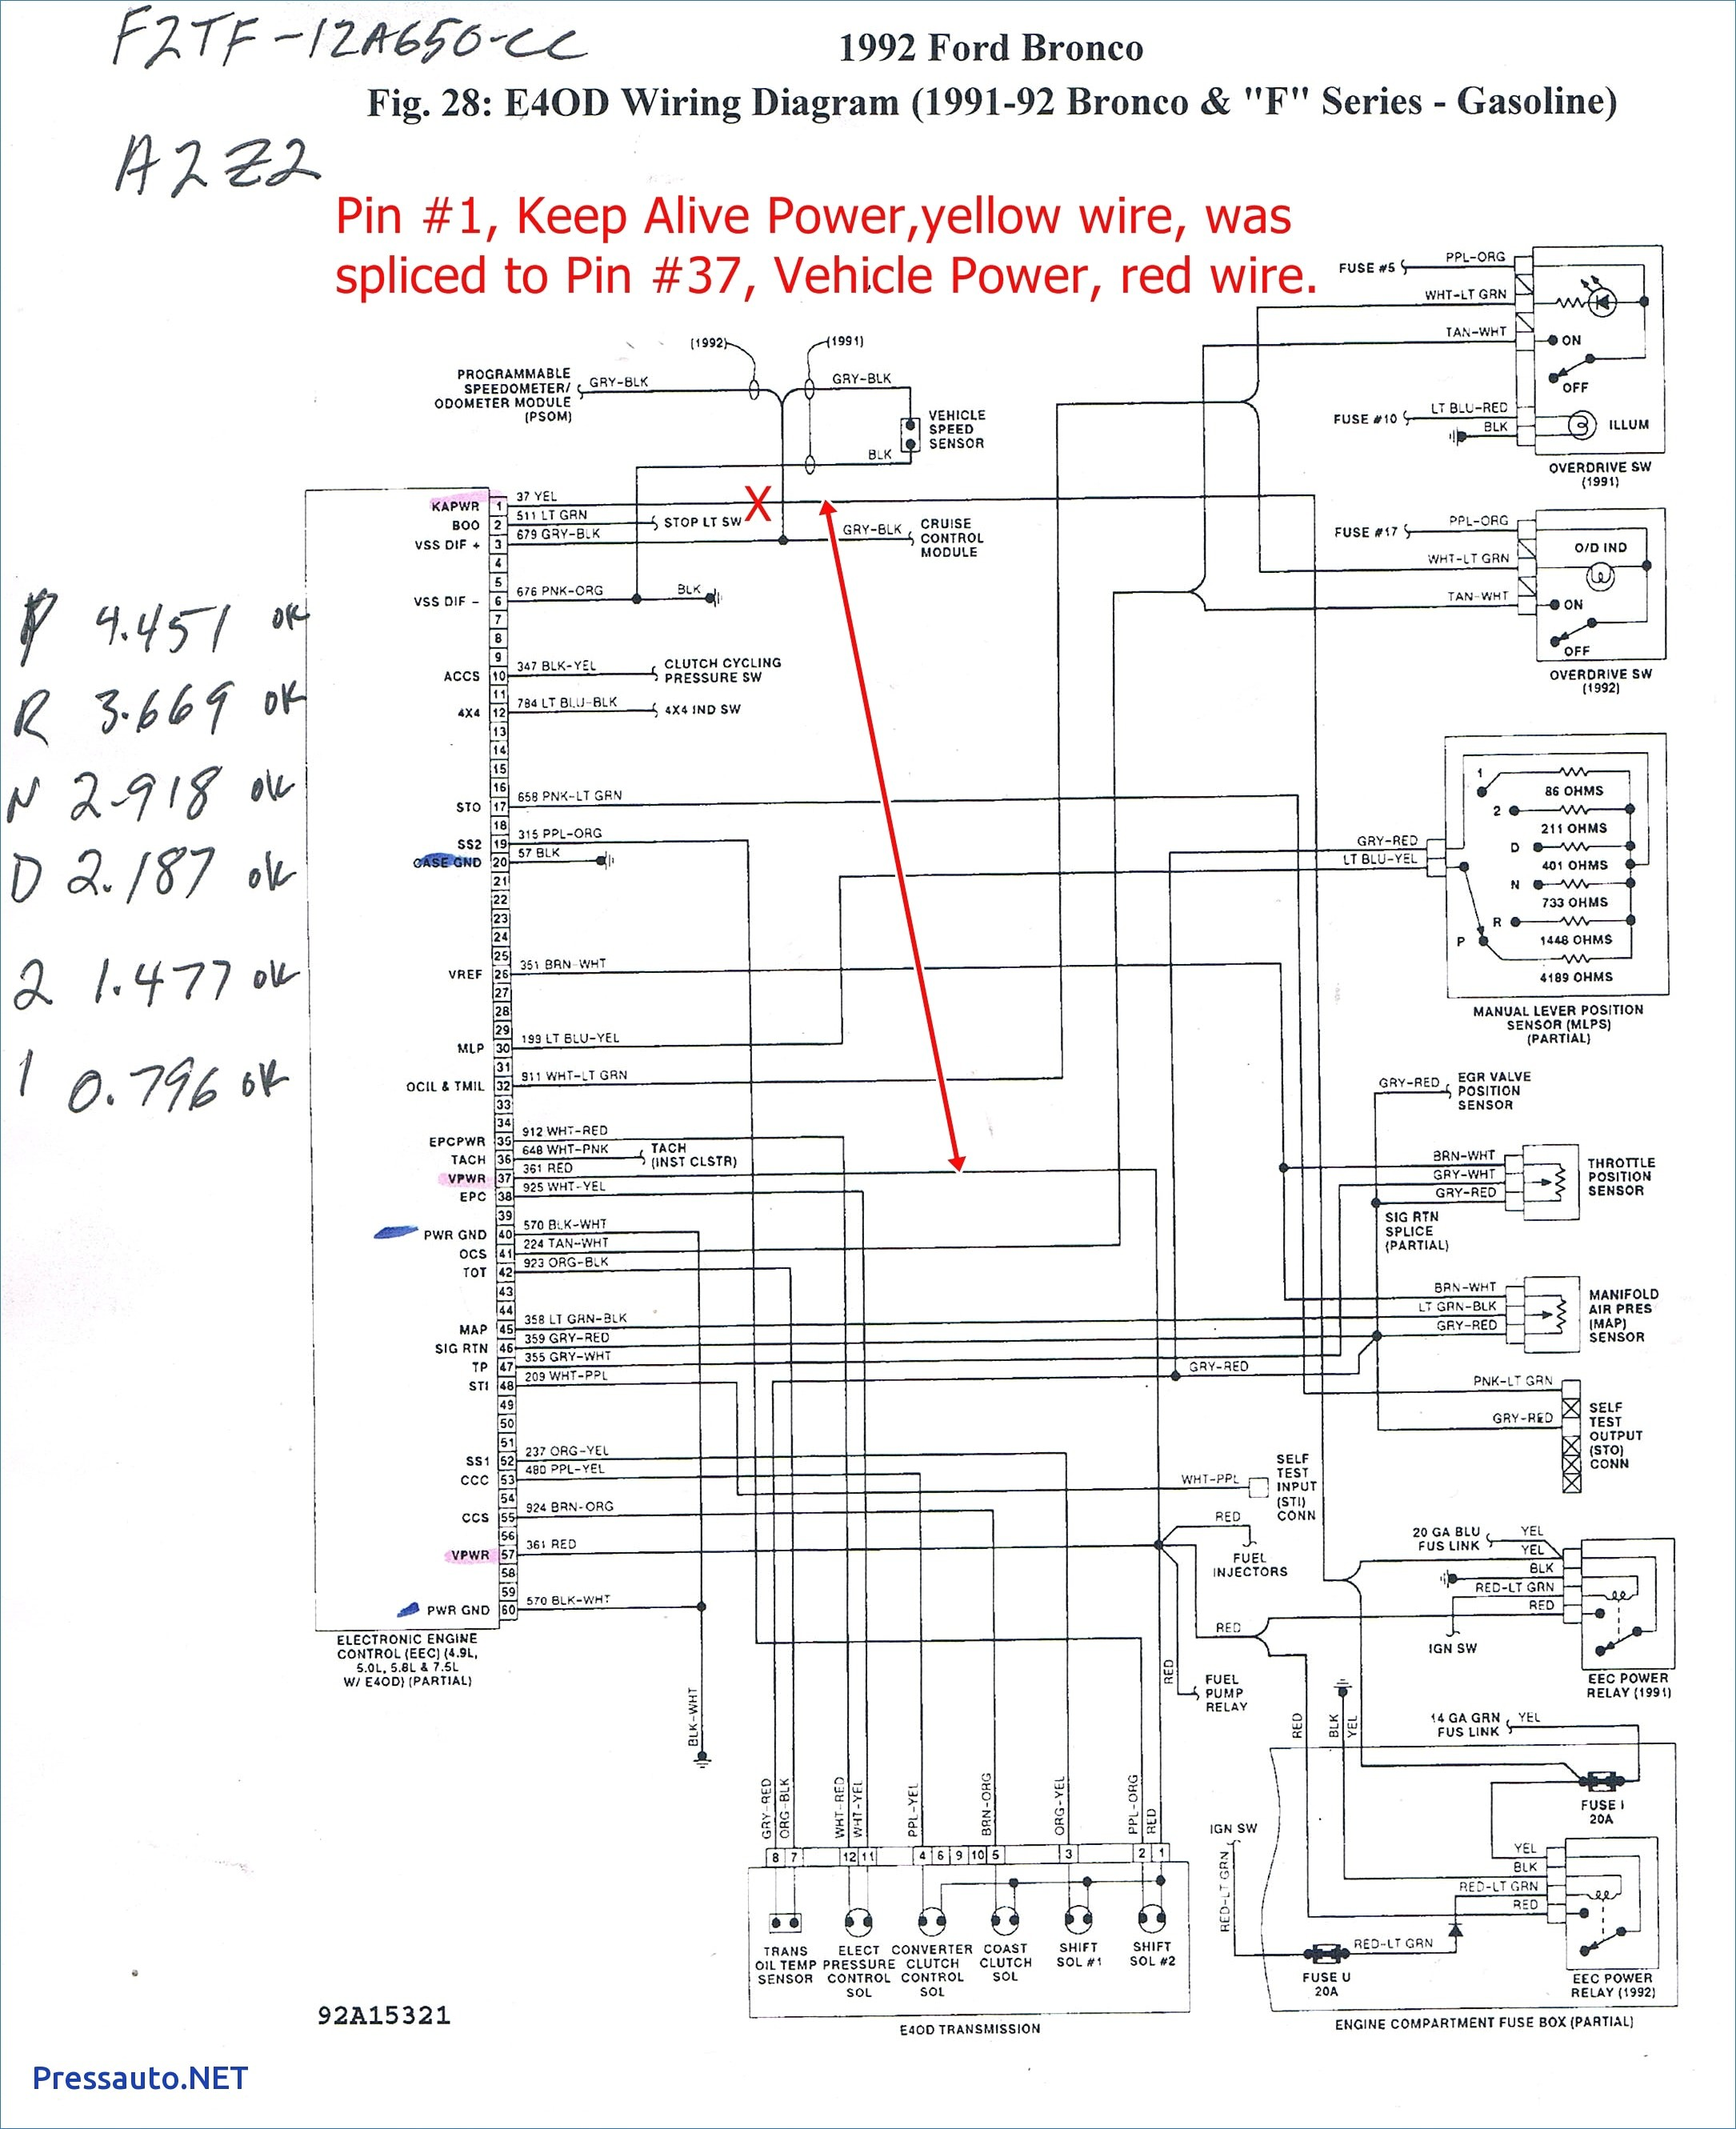 2000 mercury sable engine diagram 2007 cougar wiring diagram  small resolution of 2000 ford taurus engine diagram wiring library 2000 mercury sable thermostat location diagram